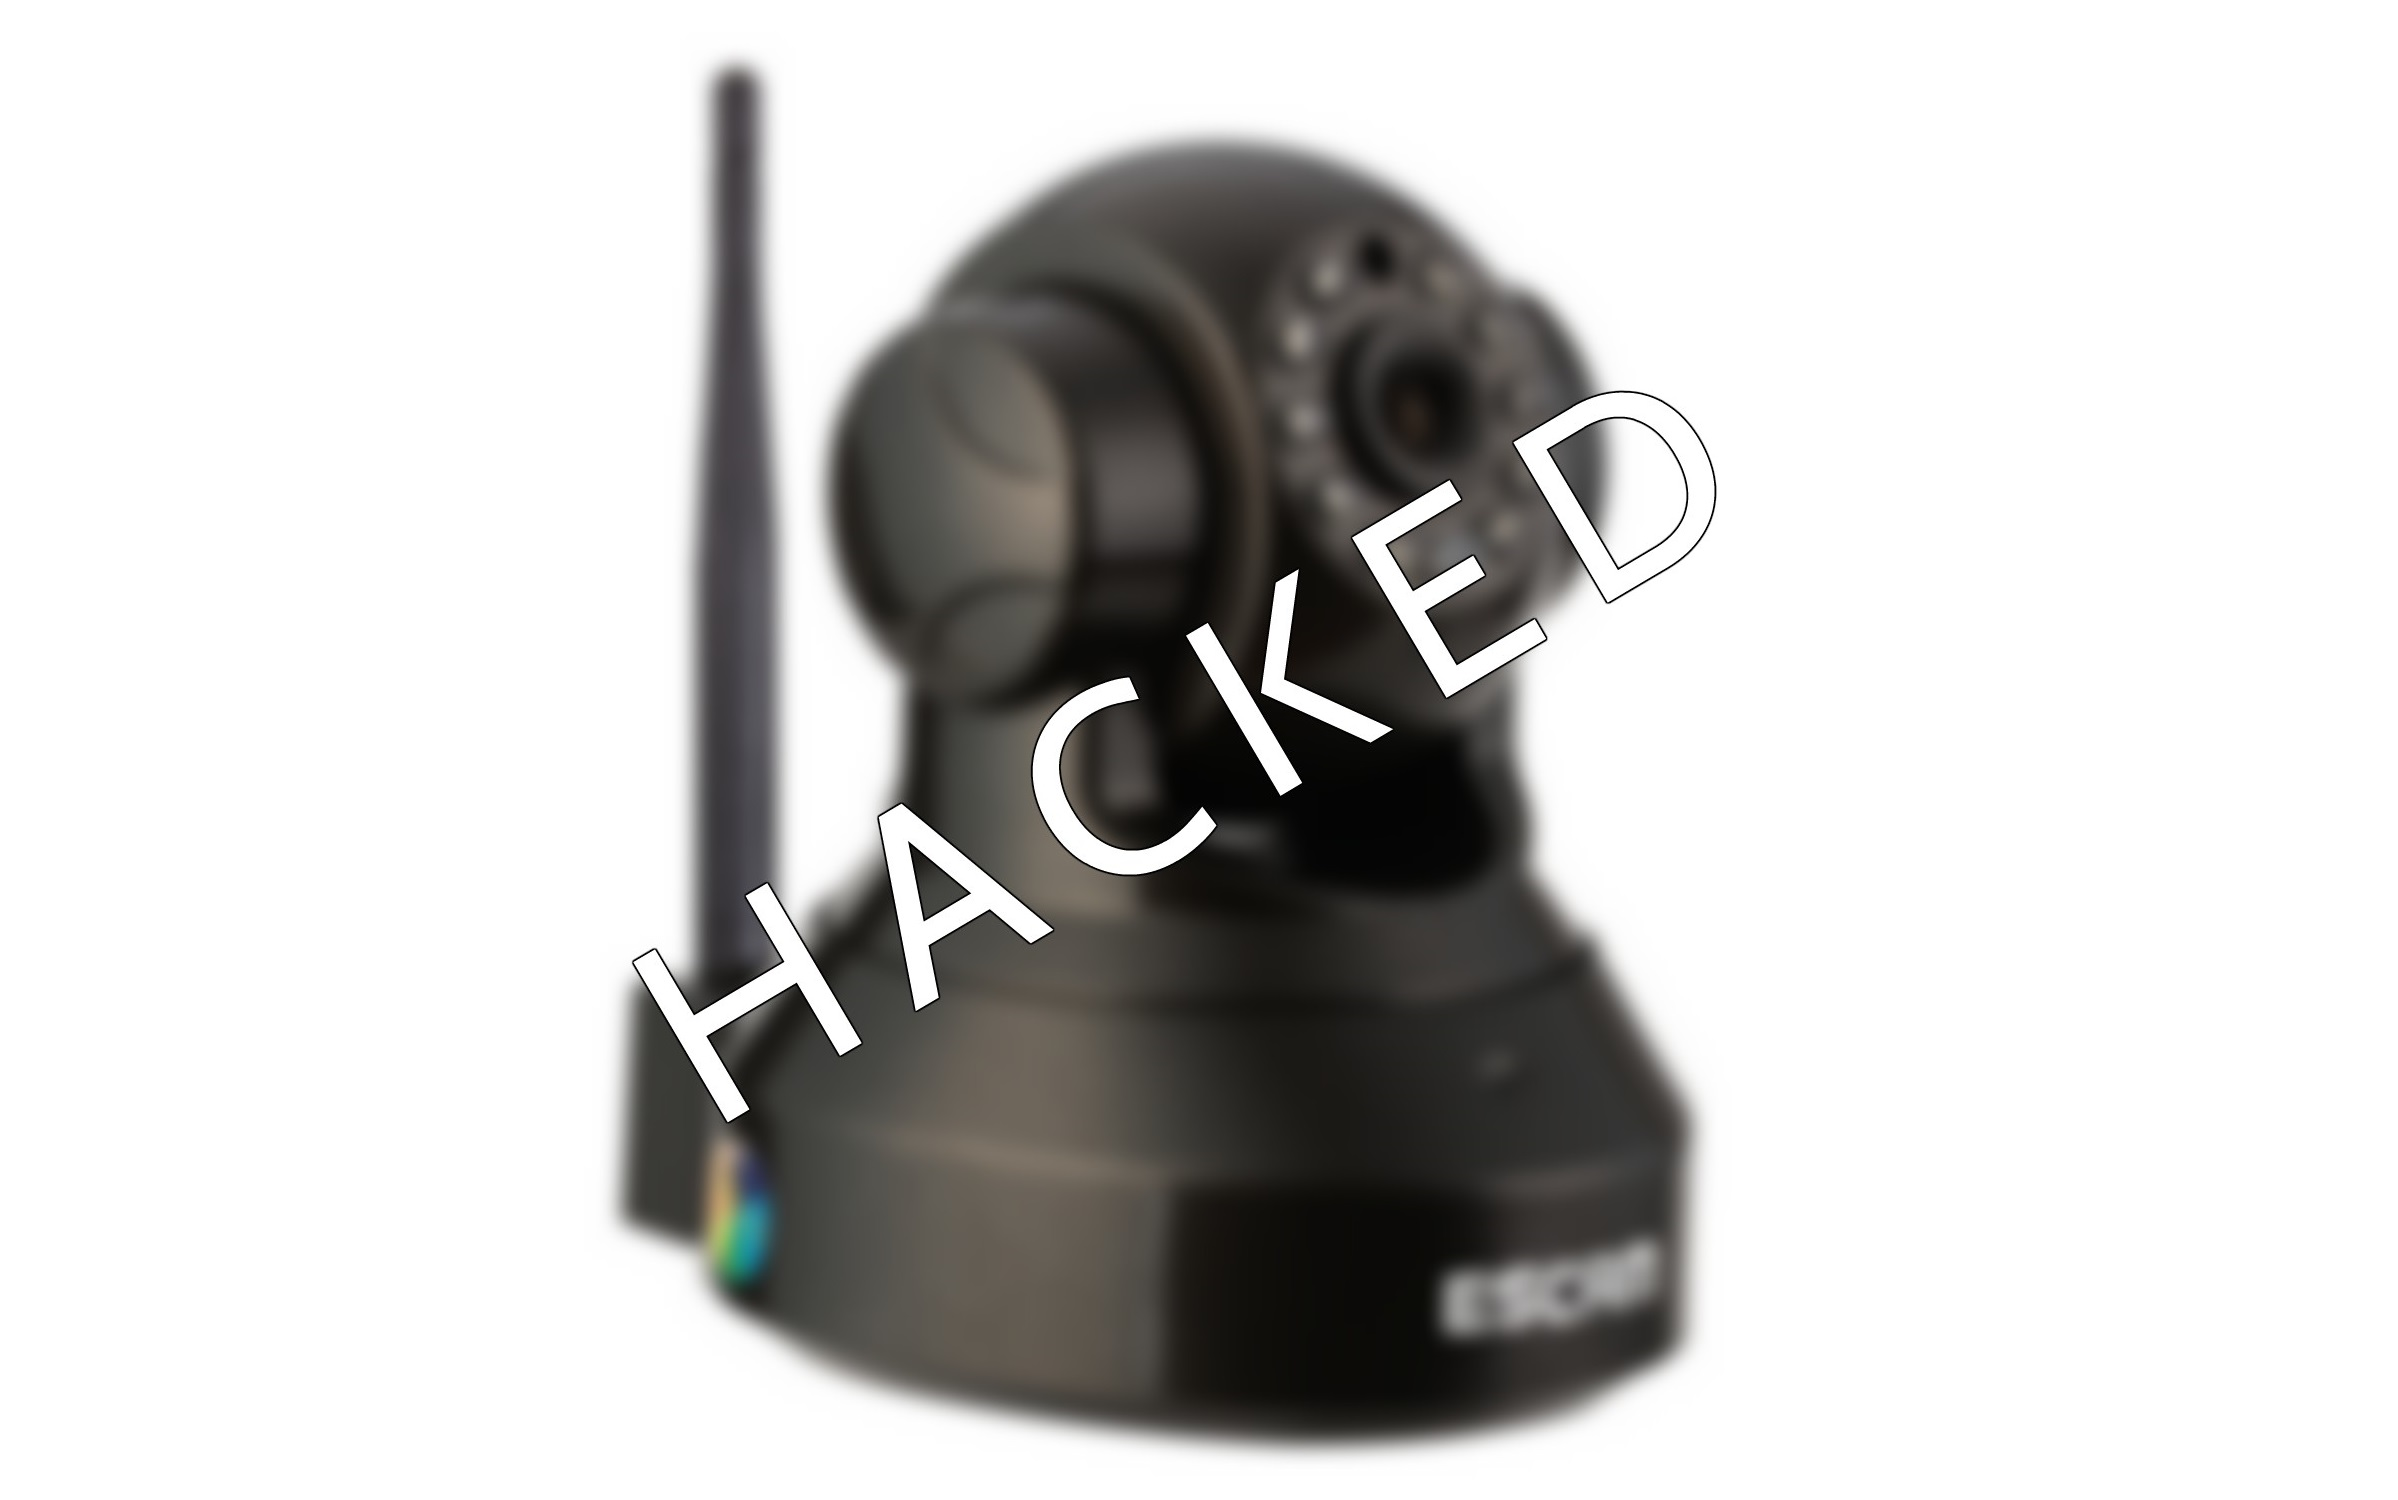 Hacking a Modern CCTV: ESCAM Pearl QF100 IP Camera